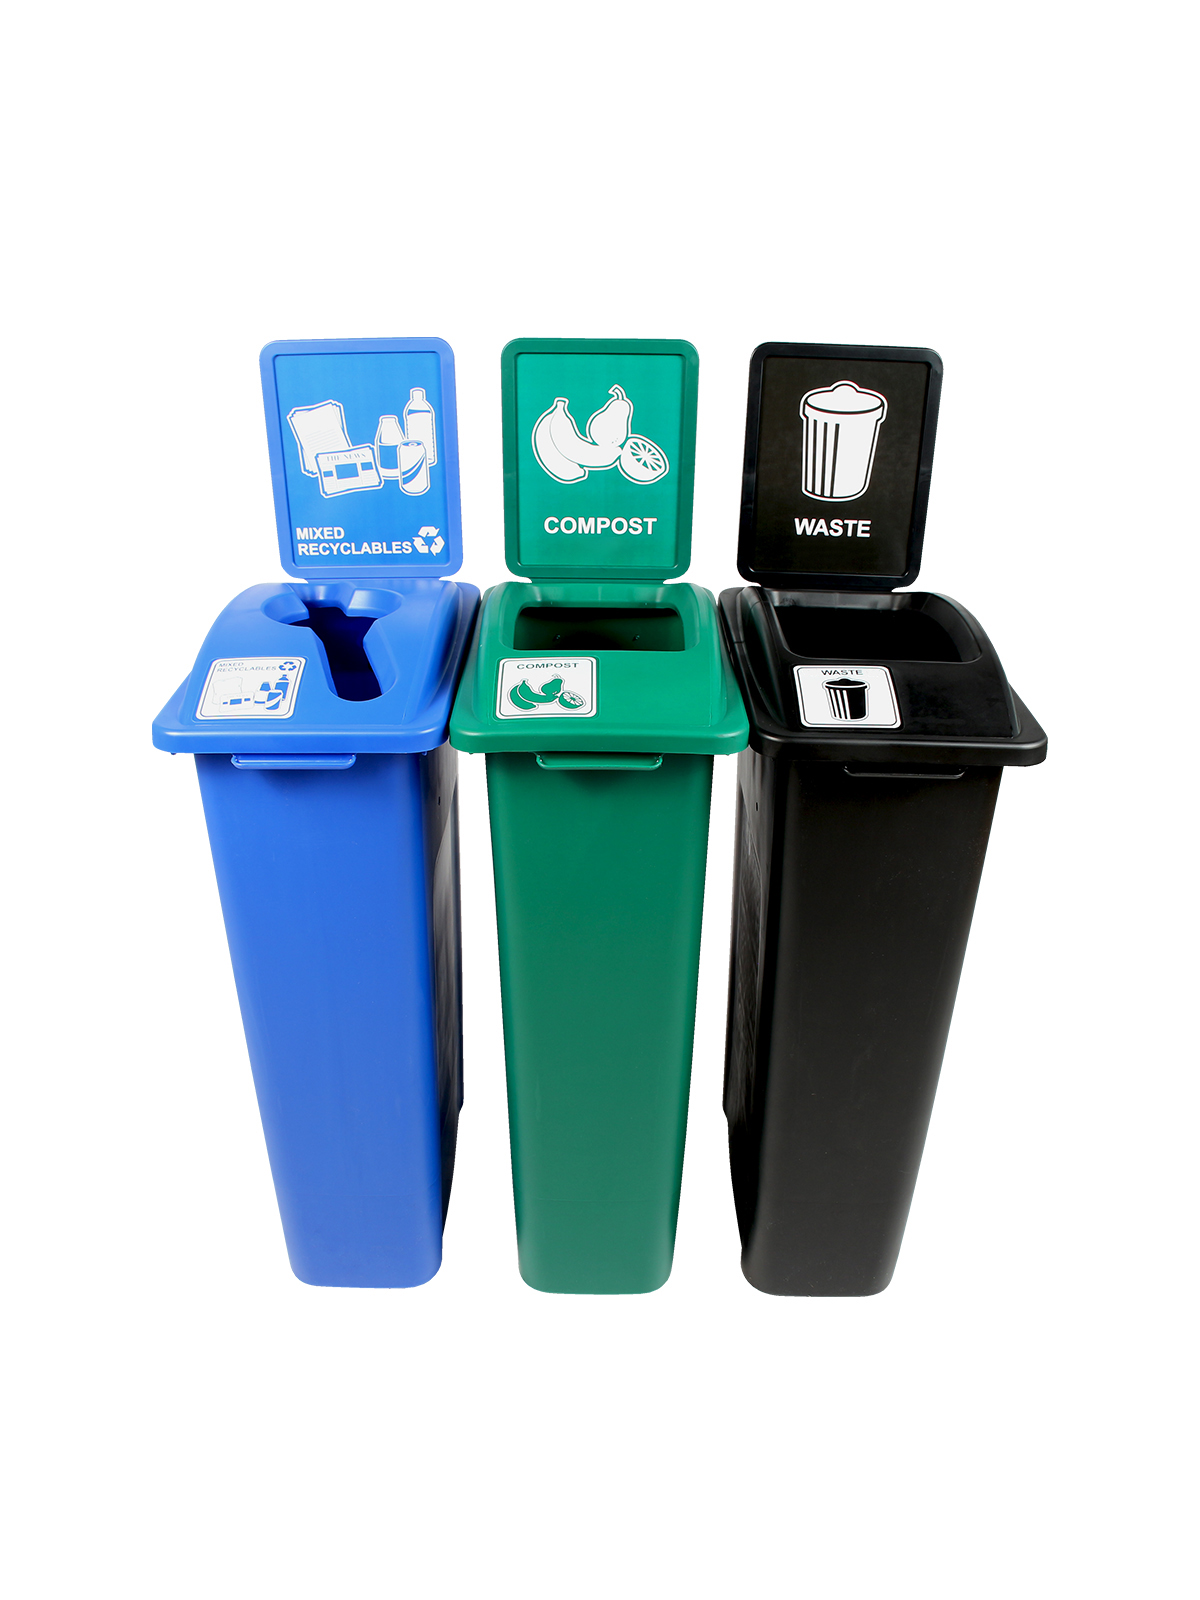 WASTE WATCHER - Triple - Mixed Recyclables-Compost-Waste - Mixed-Full - Blue-Green-Black